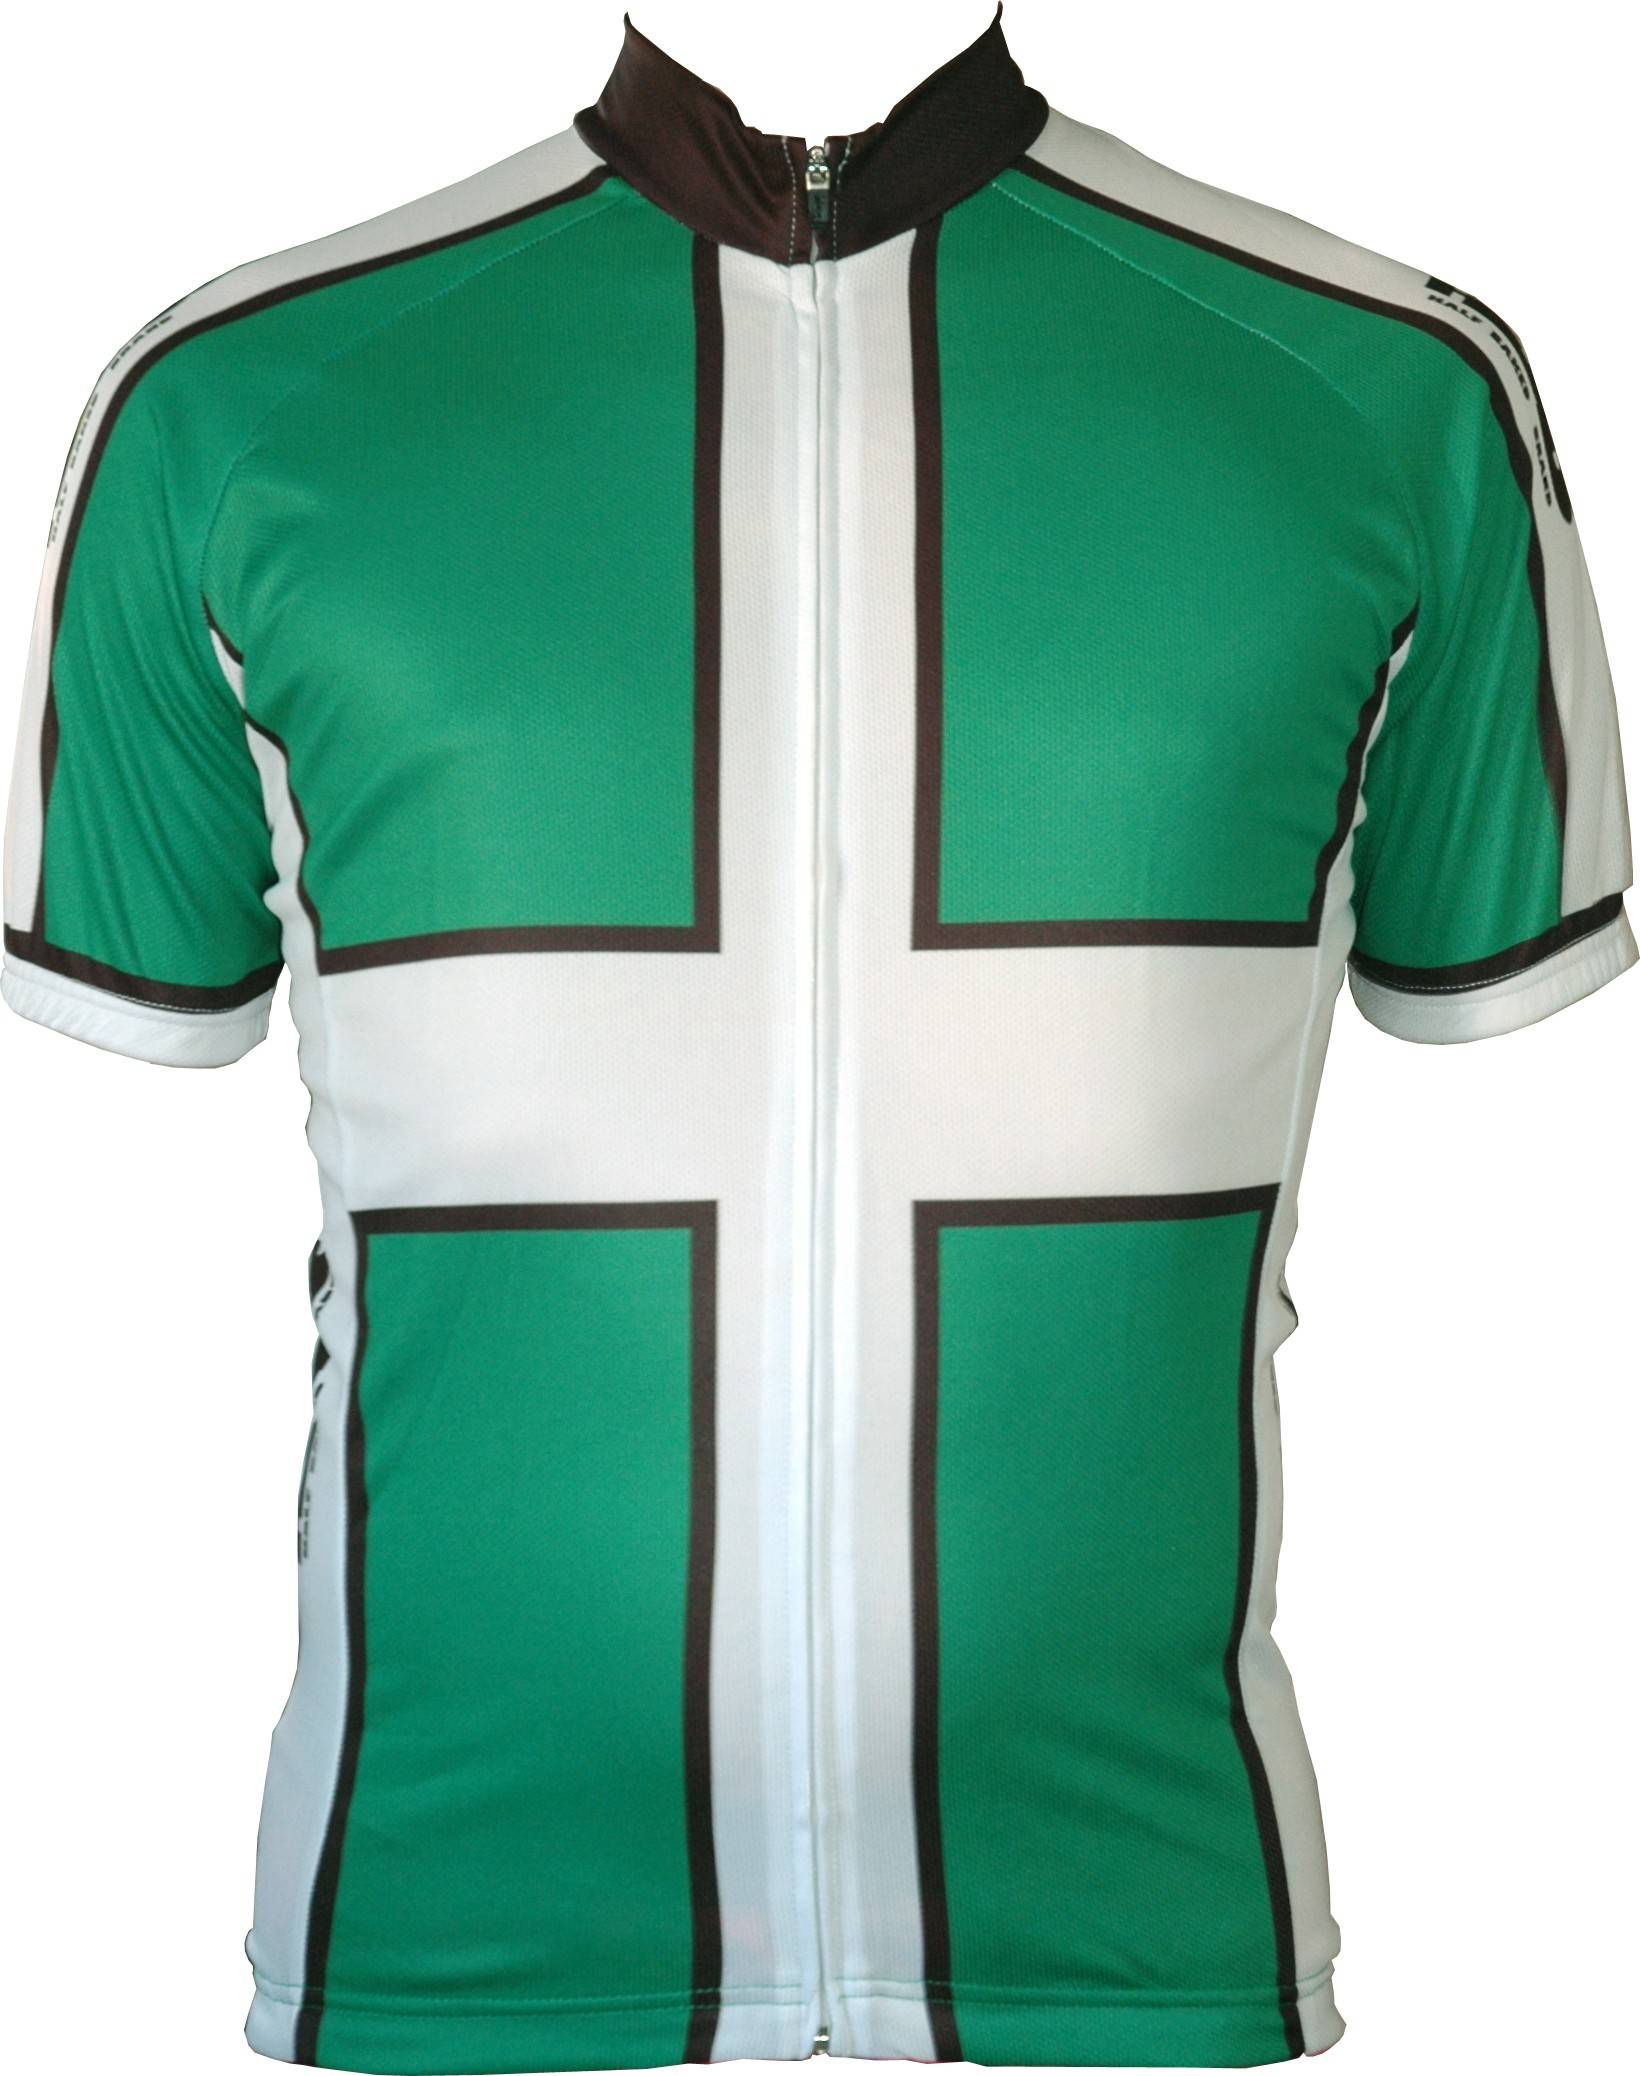 custom cycling jersey with sublimation printing